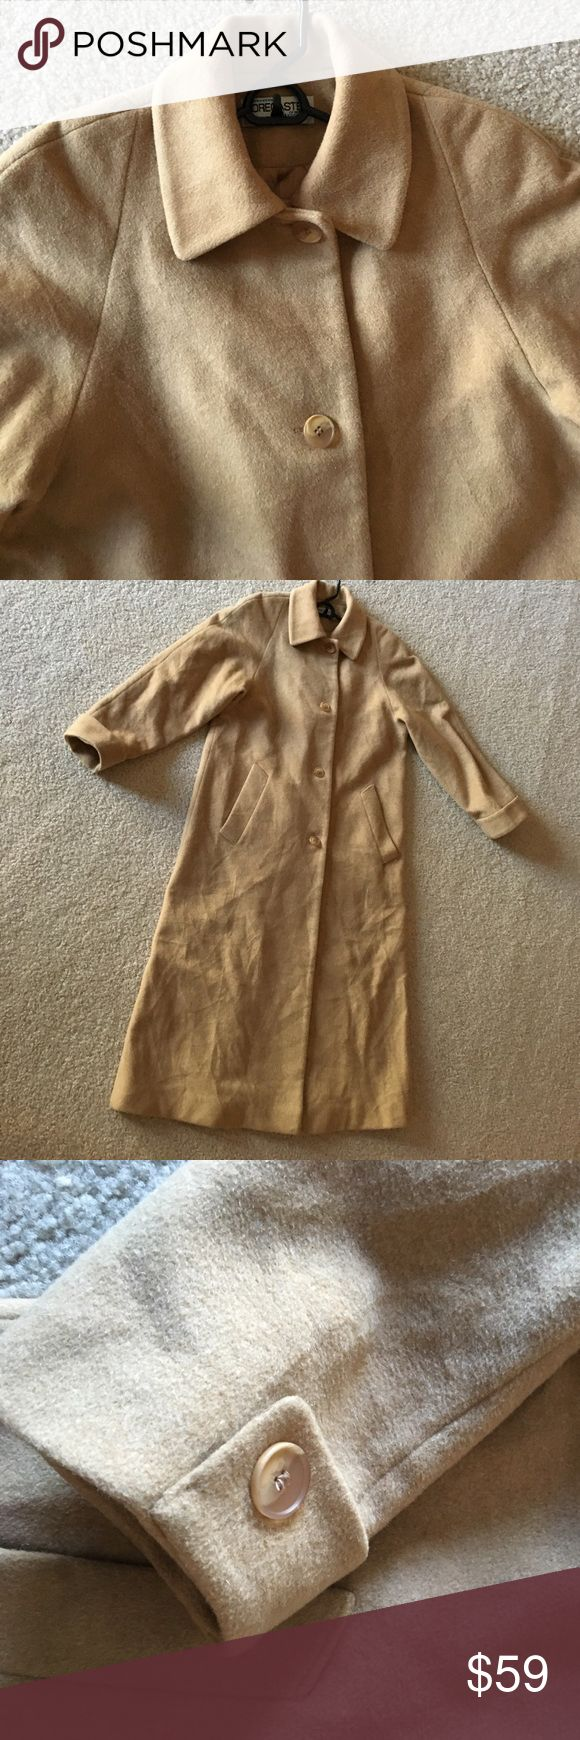 Wool long coat Camel color, very warm, used but in good condition. forecaster of boston Jackets & Coats